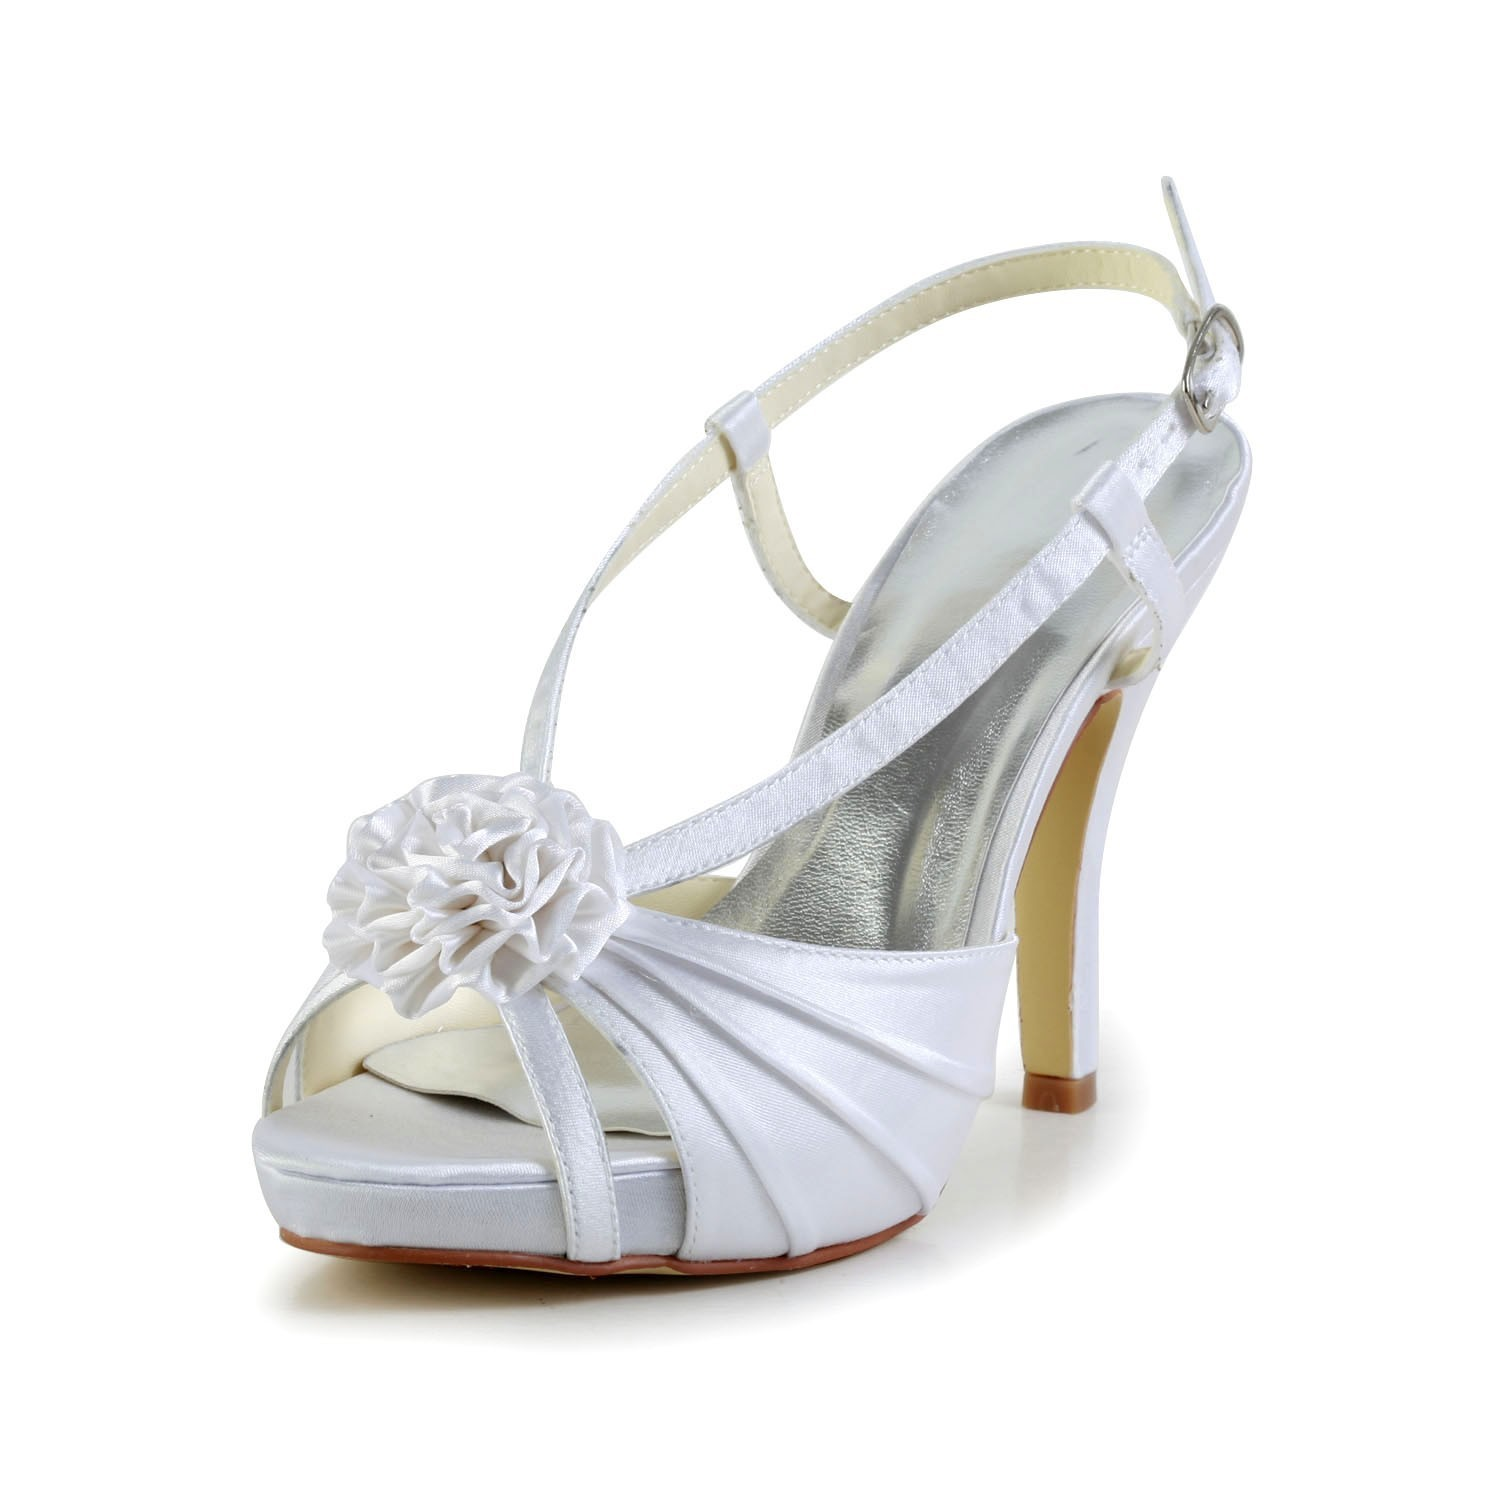 8252056811d7 The Most Fashionable Women s Satin Stiletto Heel Peep Toe Platform White  Wedding Shoes With Buckle